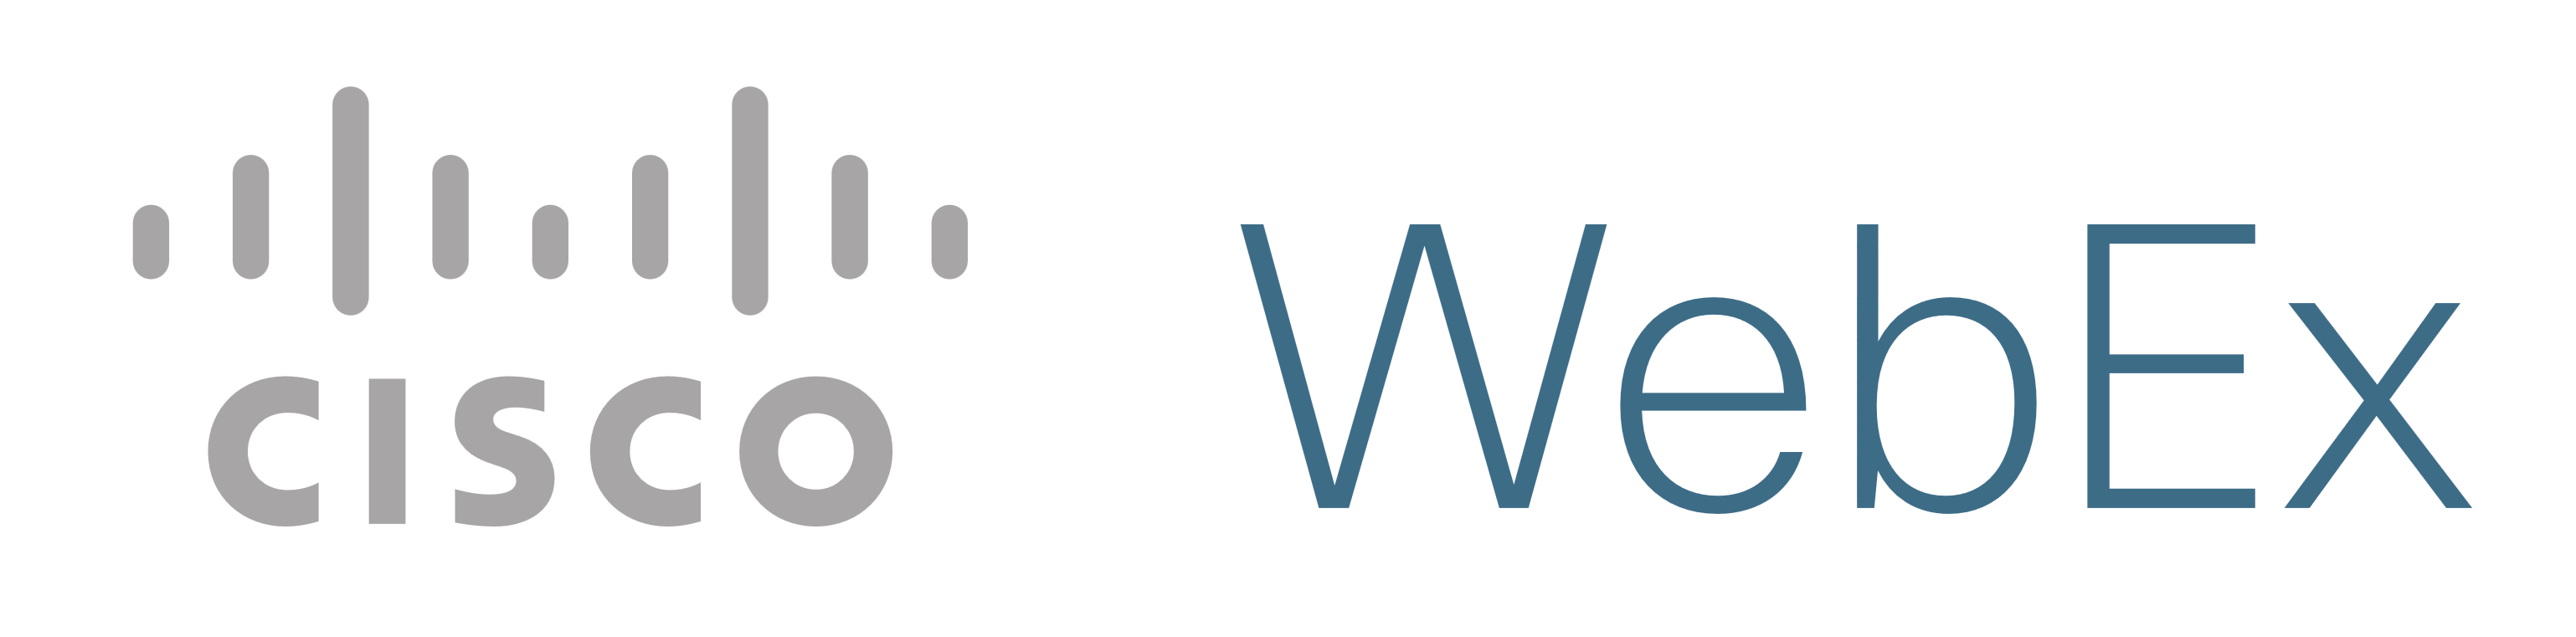 cisco webex png logo #3773